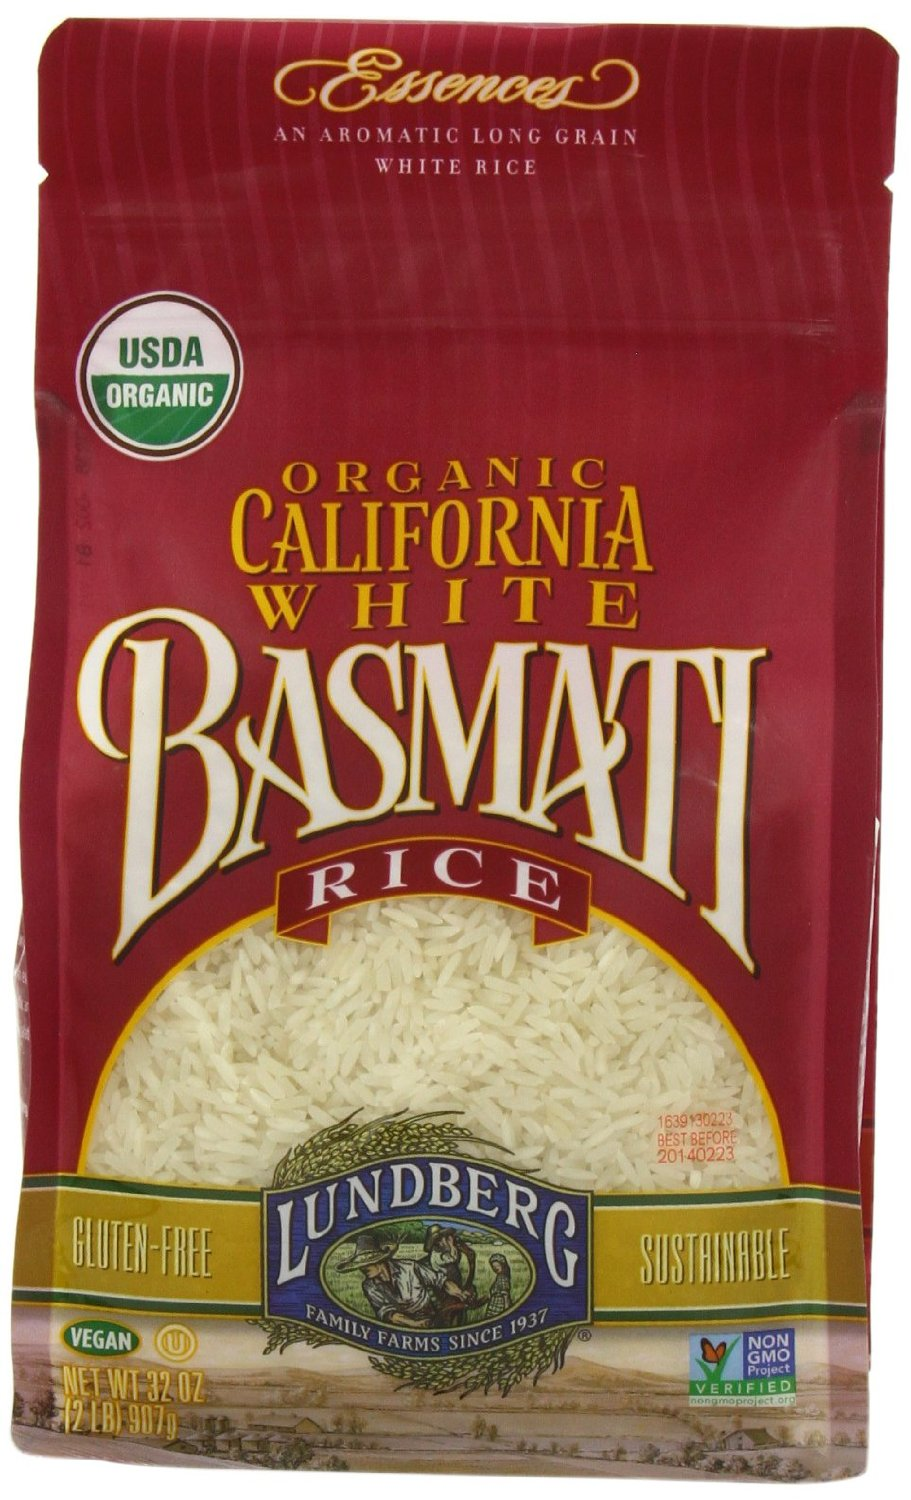 Lundberg California Basmati rice is thebrand I exclusively buy for my family. Ithas only 1.3 -1.6 ppb arsenic per serving (1/4 cup uncooked), which is well below the safe limit.